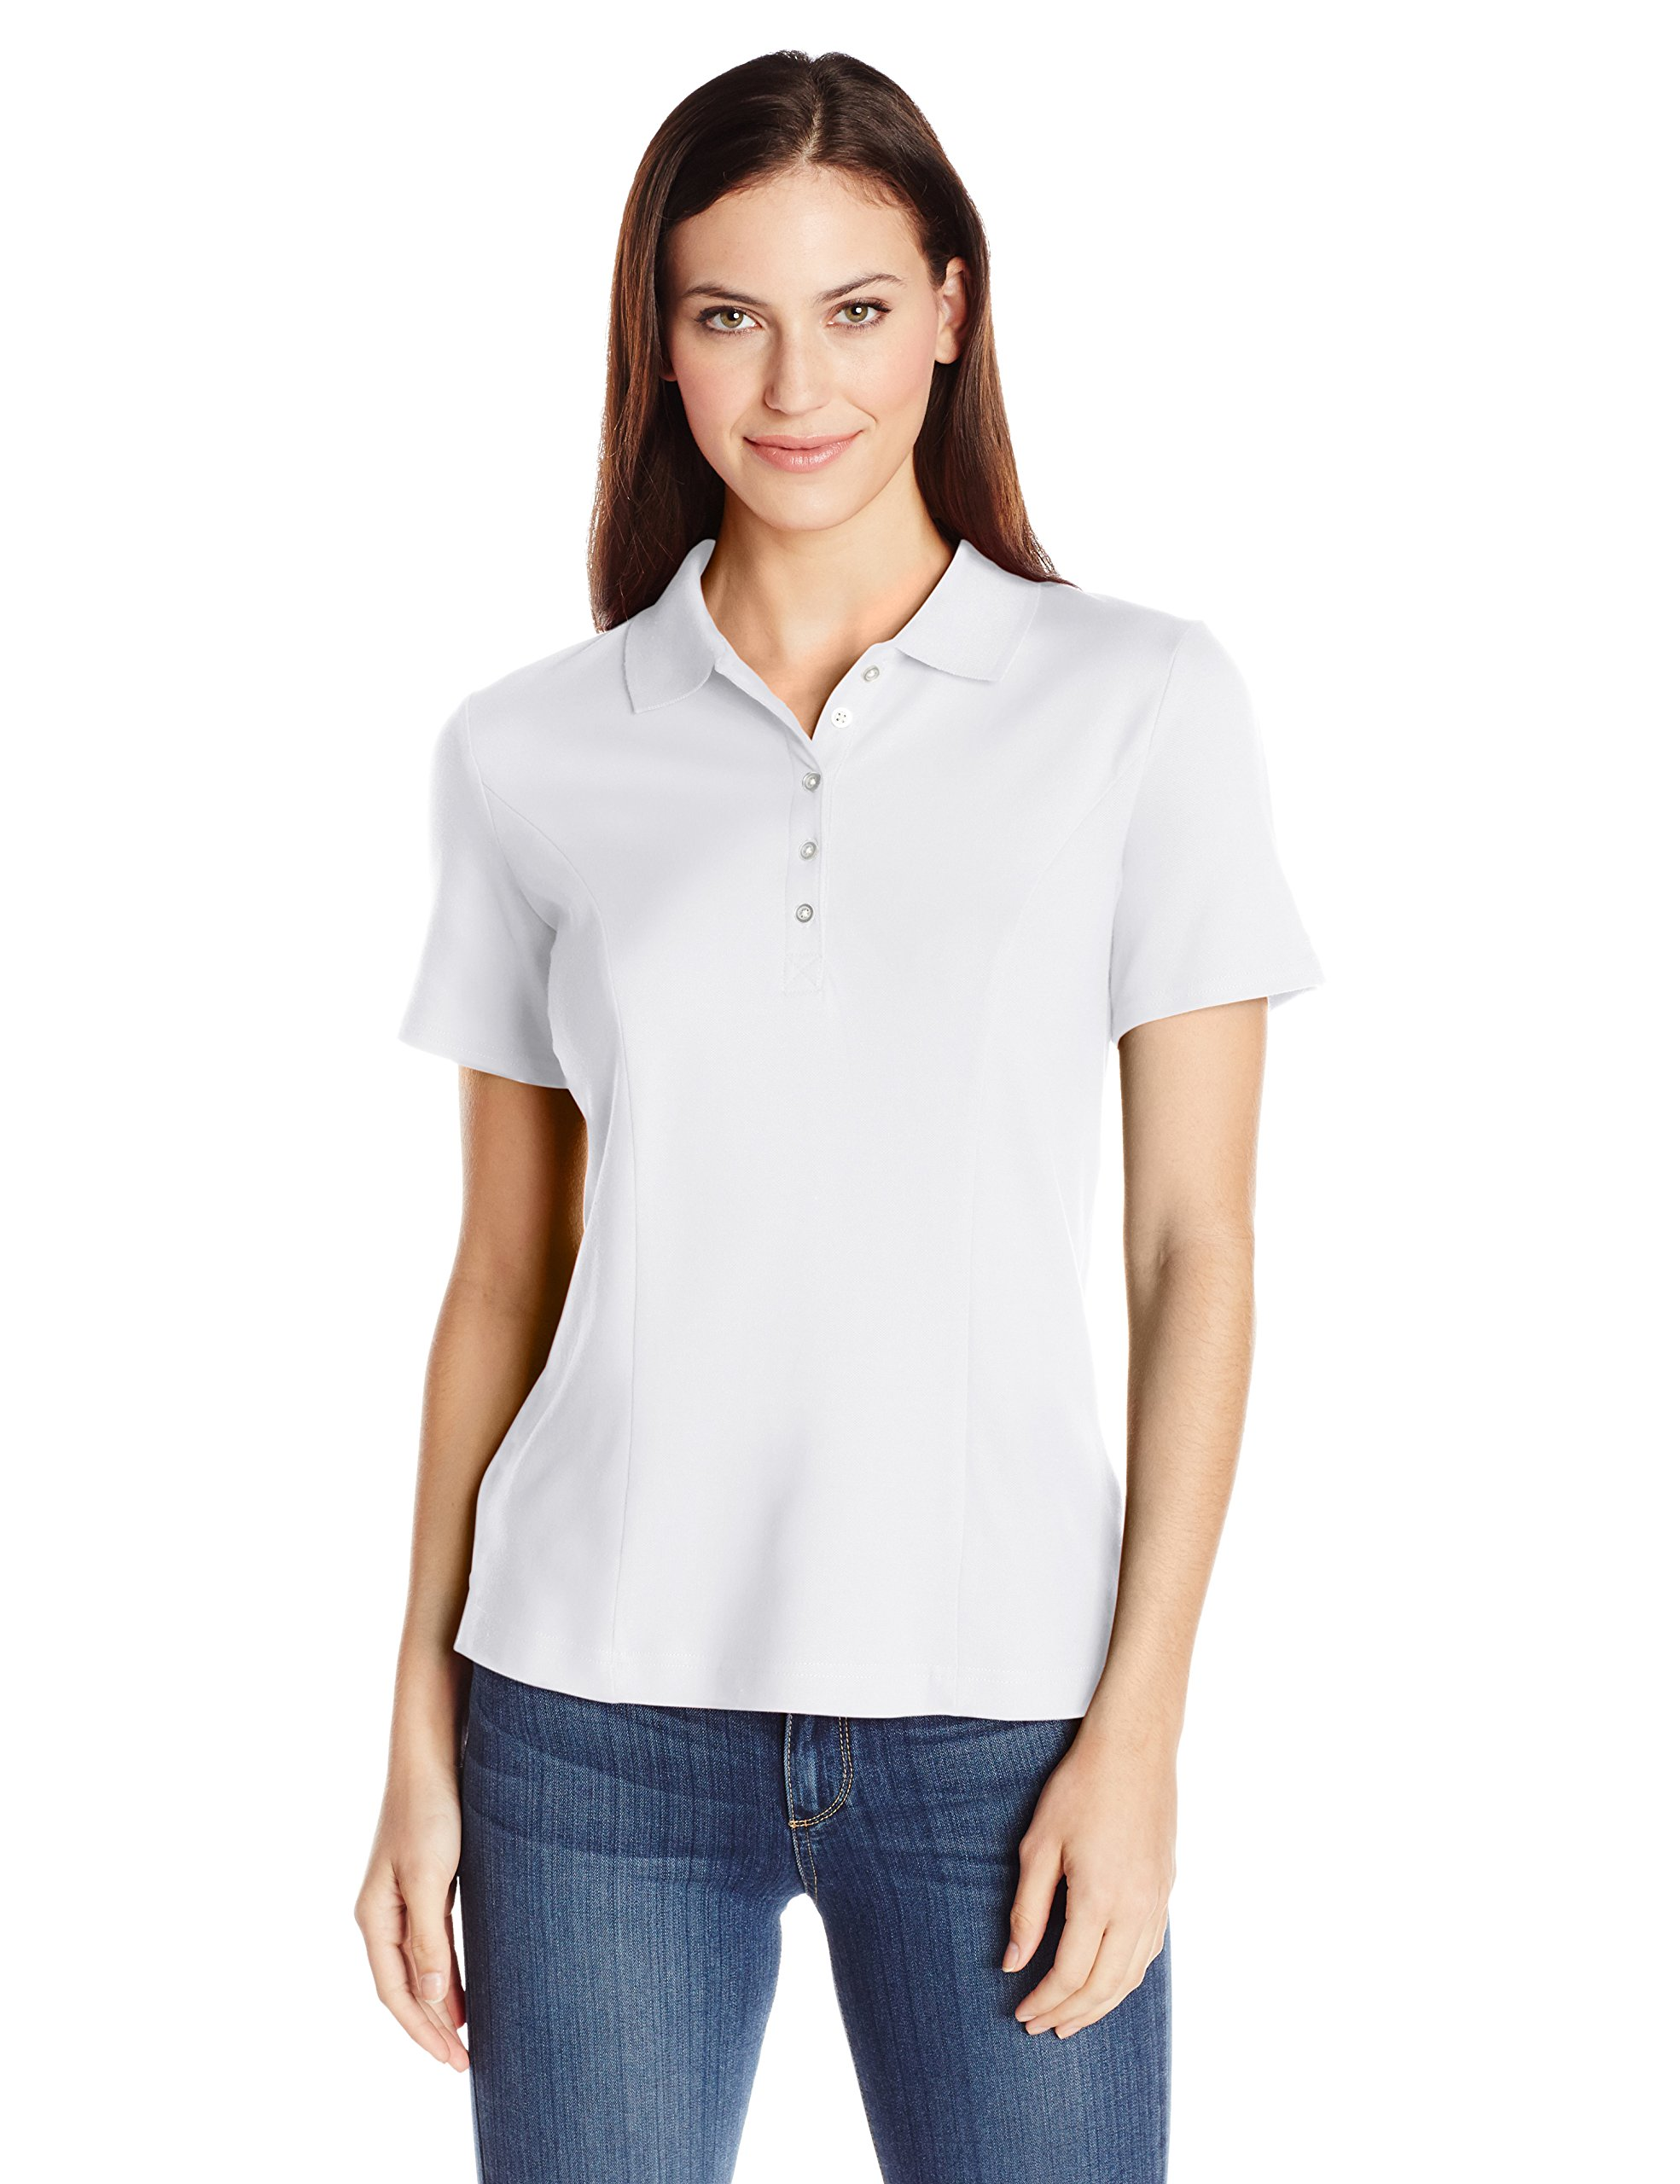 Riders by Lee Indigo Women's Morgan Short Sleeve Polo Shirt, Arctic White, Large